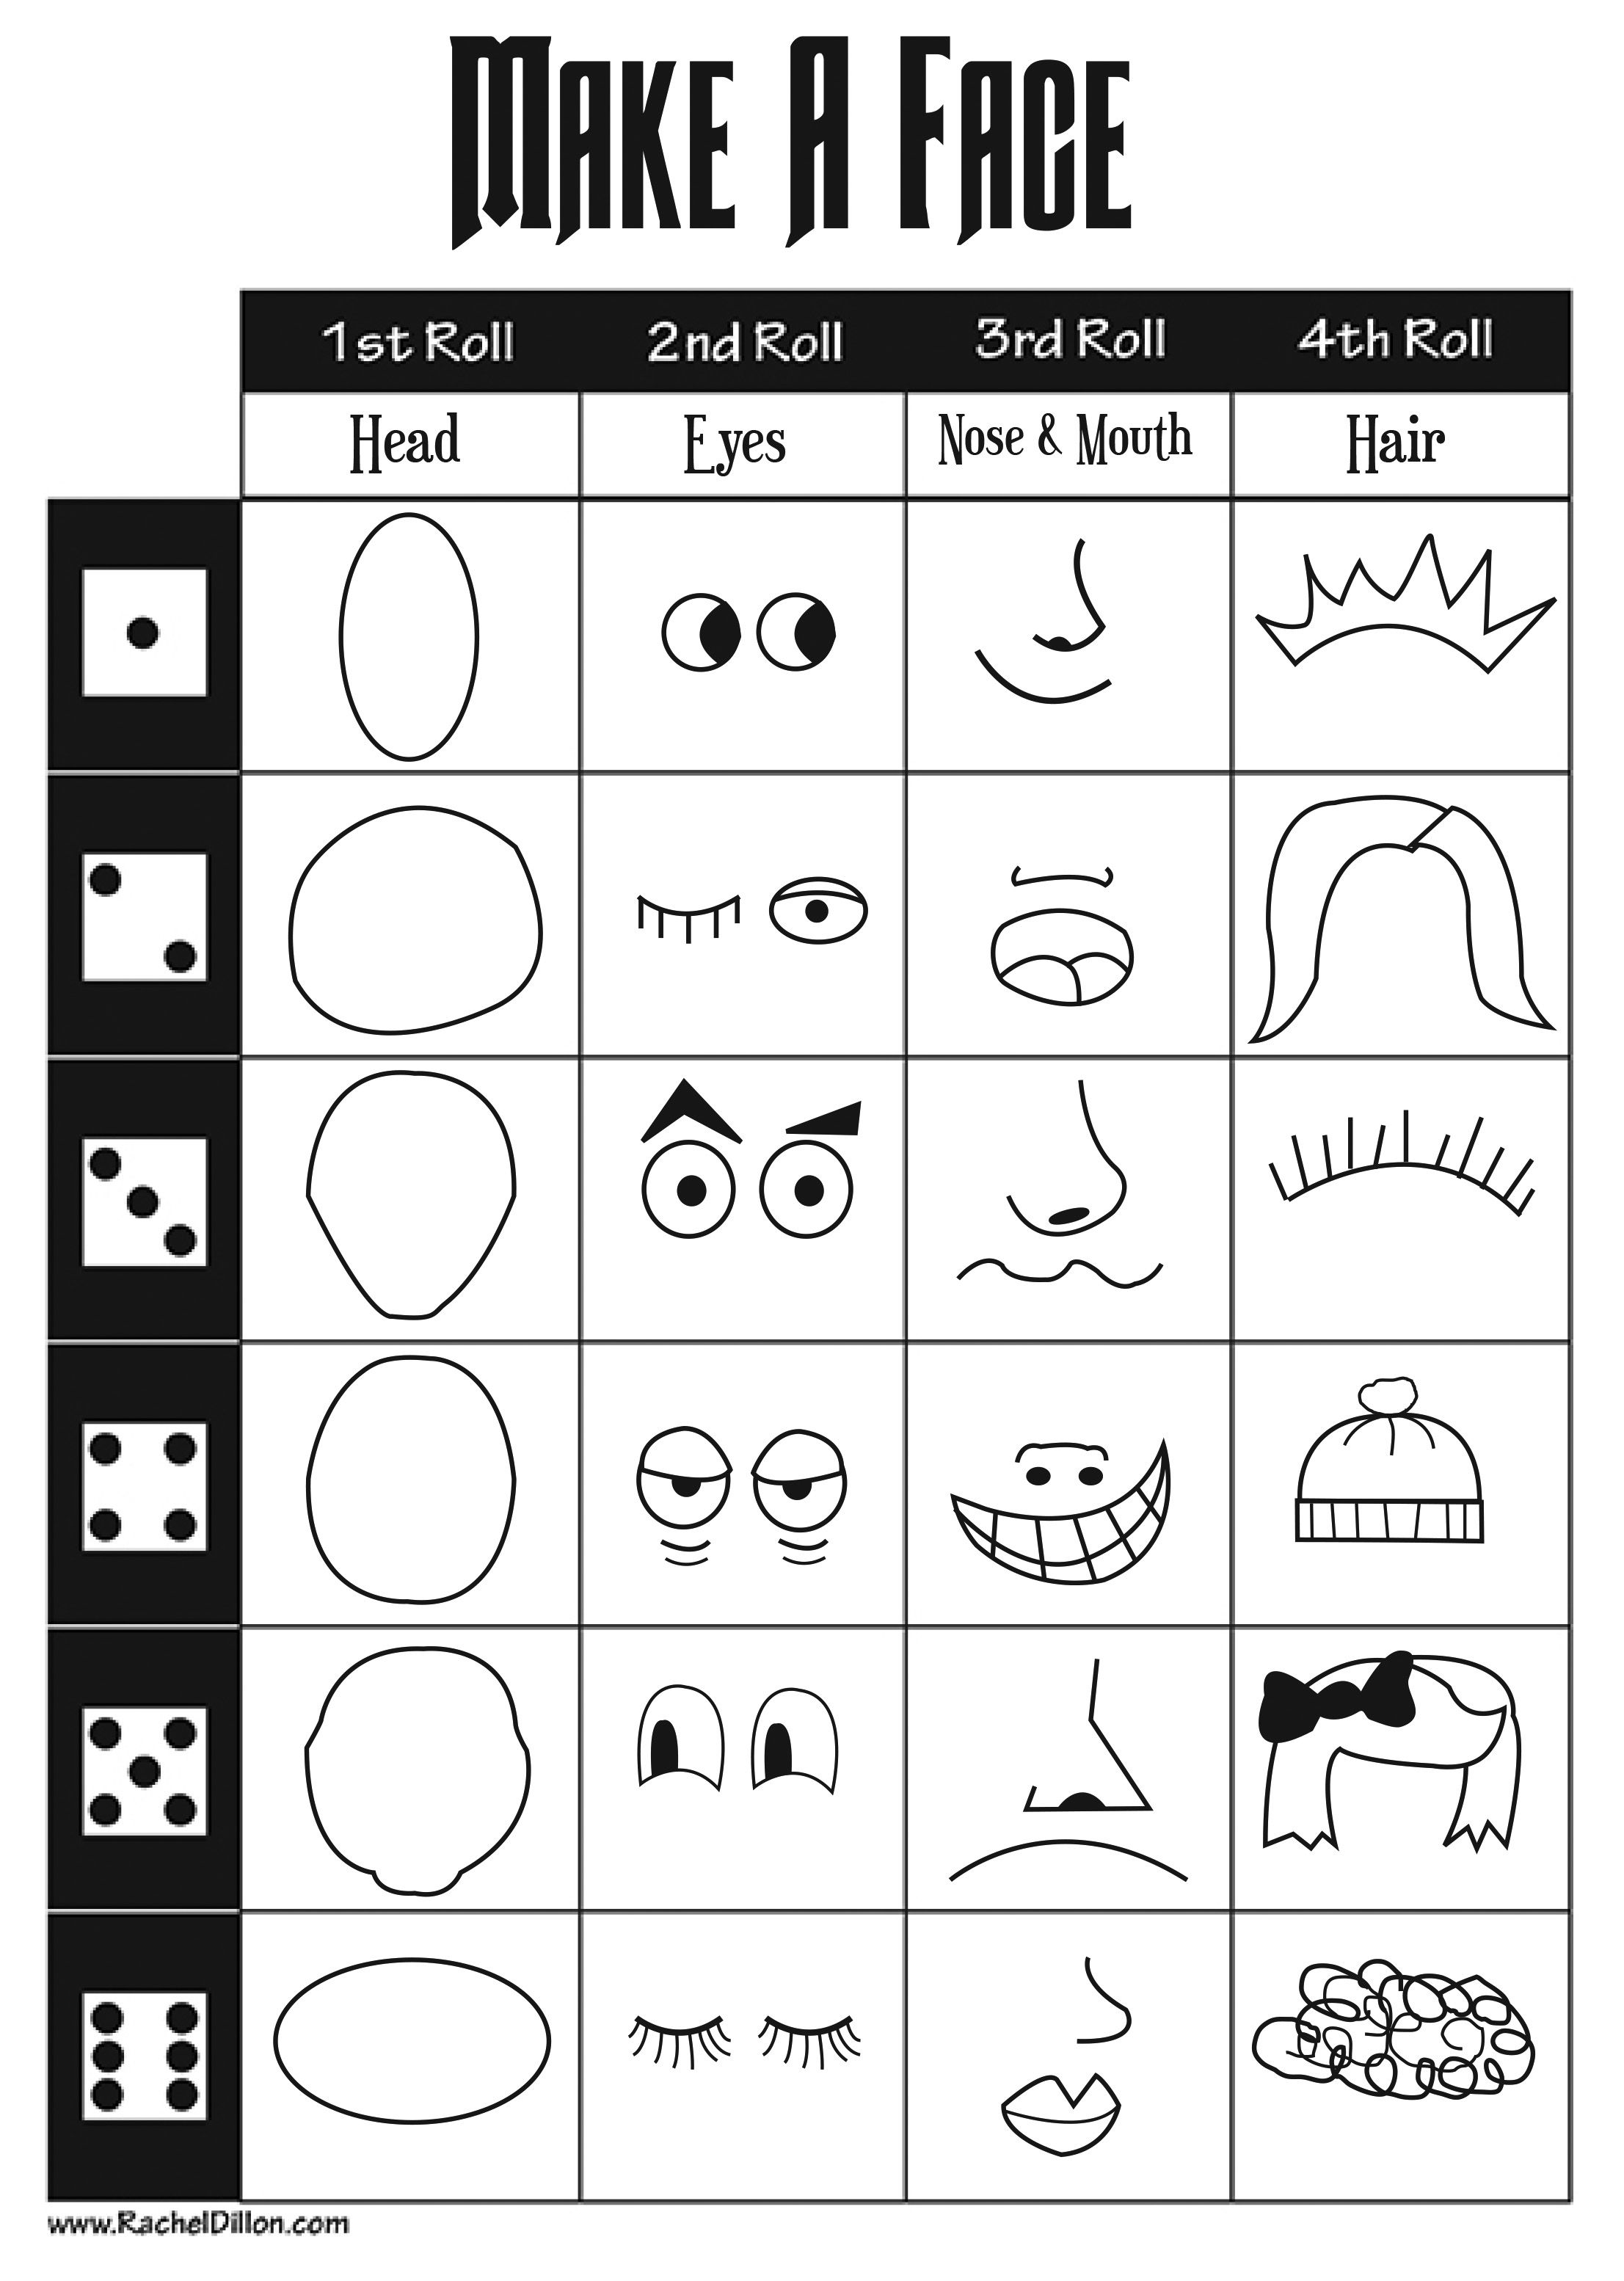 Make A Face Dice Game For Kids To Do This Is Great To Keep Kids Occupied When They Finish Their